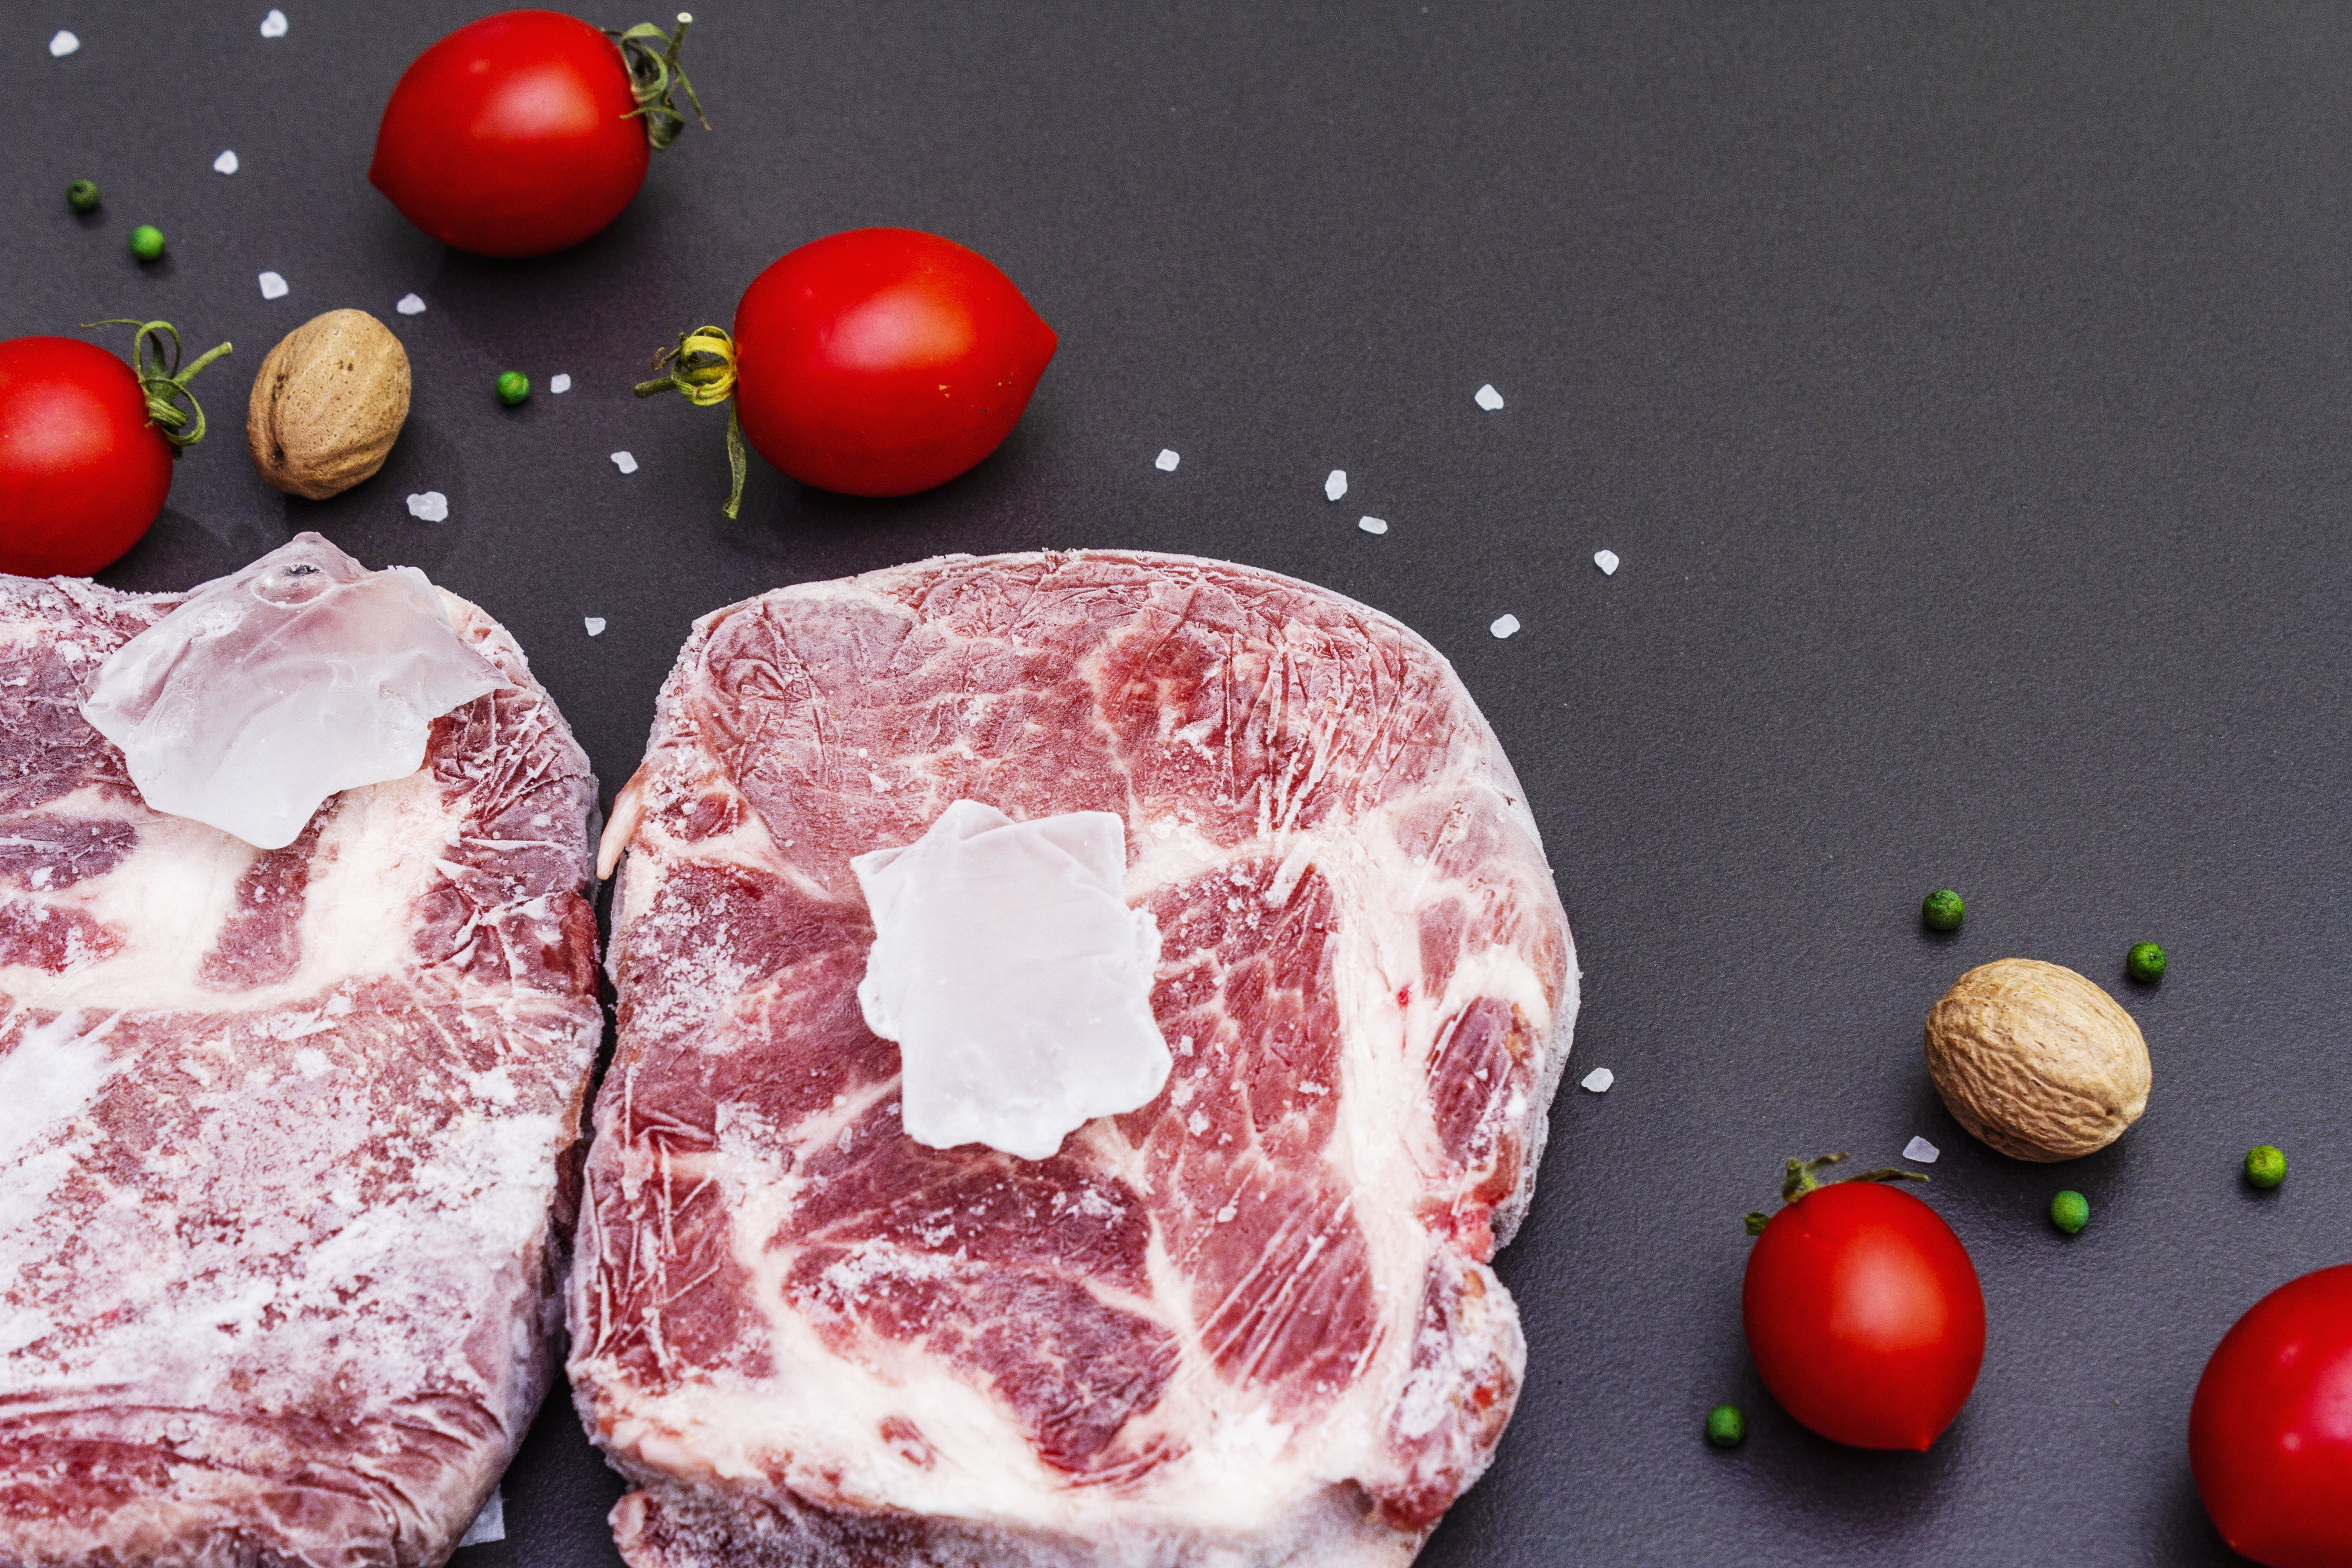 How Long Does Meat Stay Good in the Refrigerator?